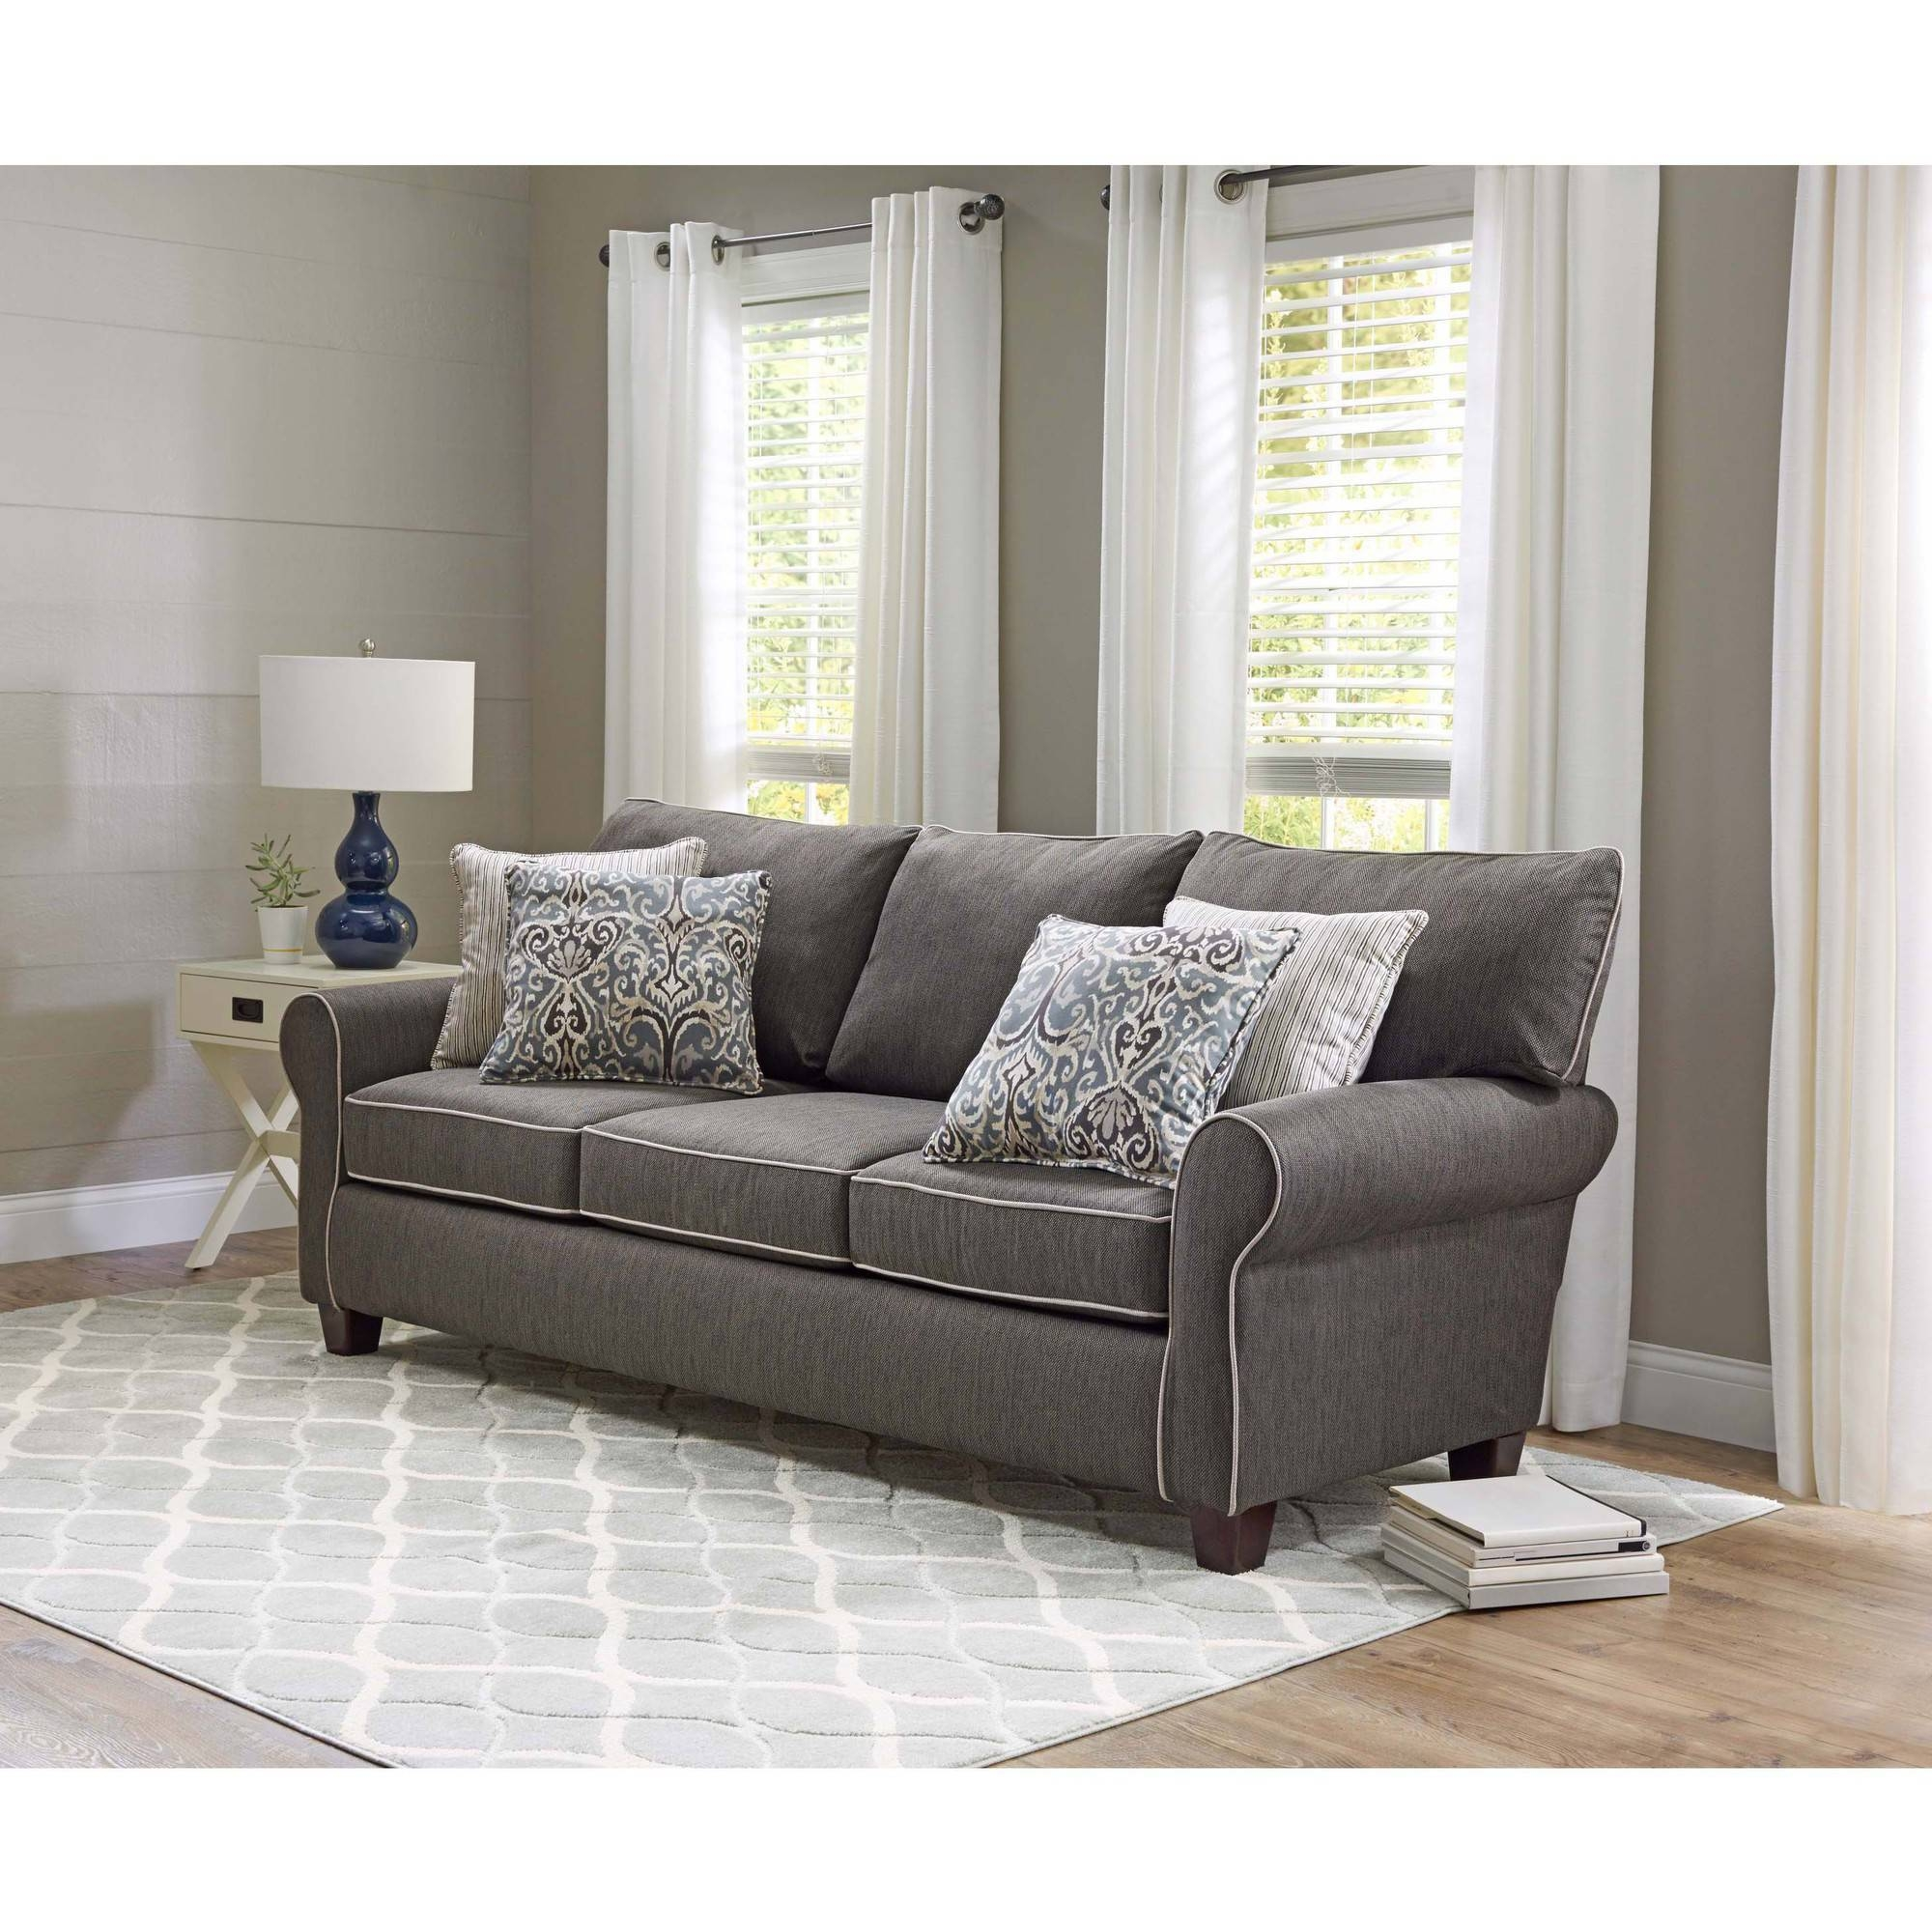 Furniture: Wonderful Walmart Couch Covers Design For Alluring throughout 3 Piece Sectional Sofa Slipcovers (Image 14 of 33)